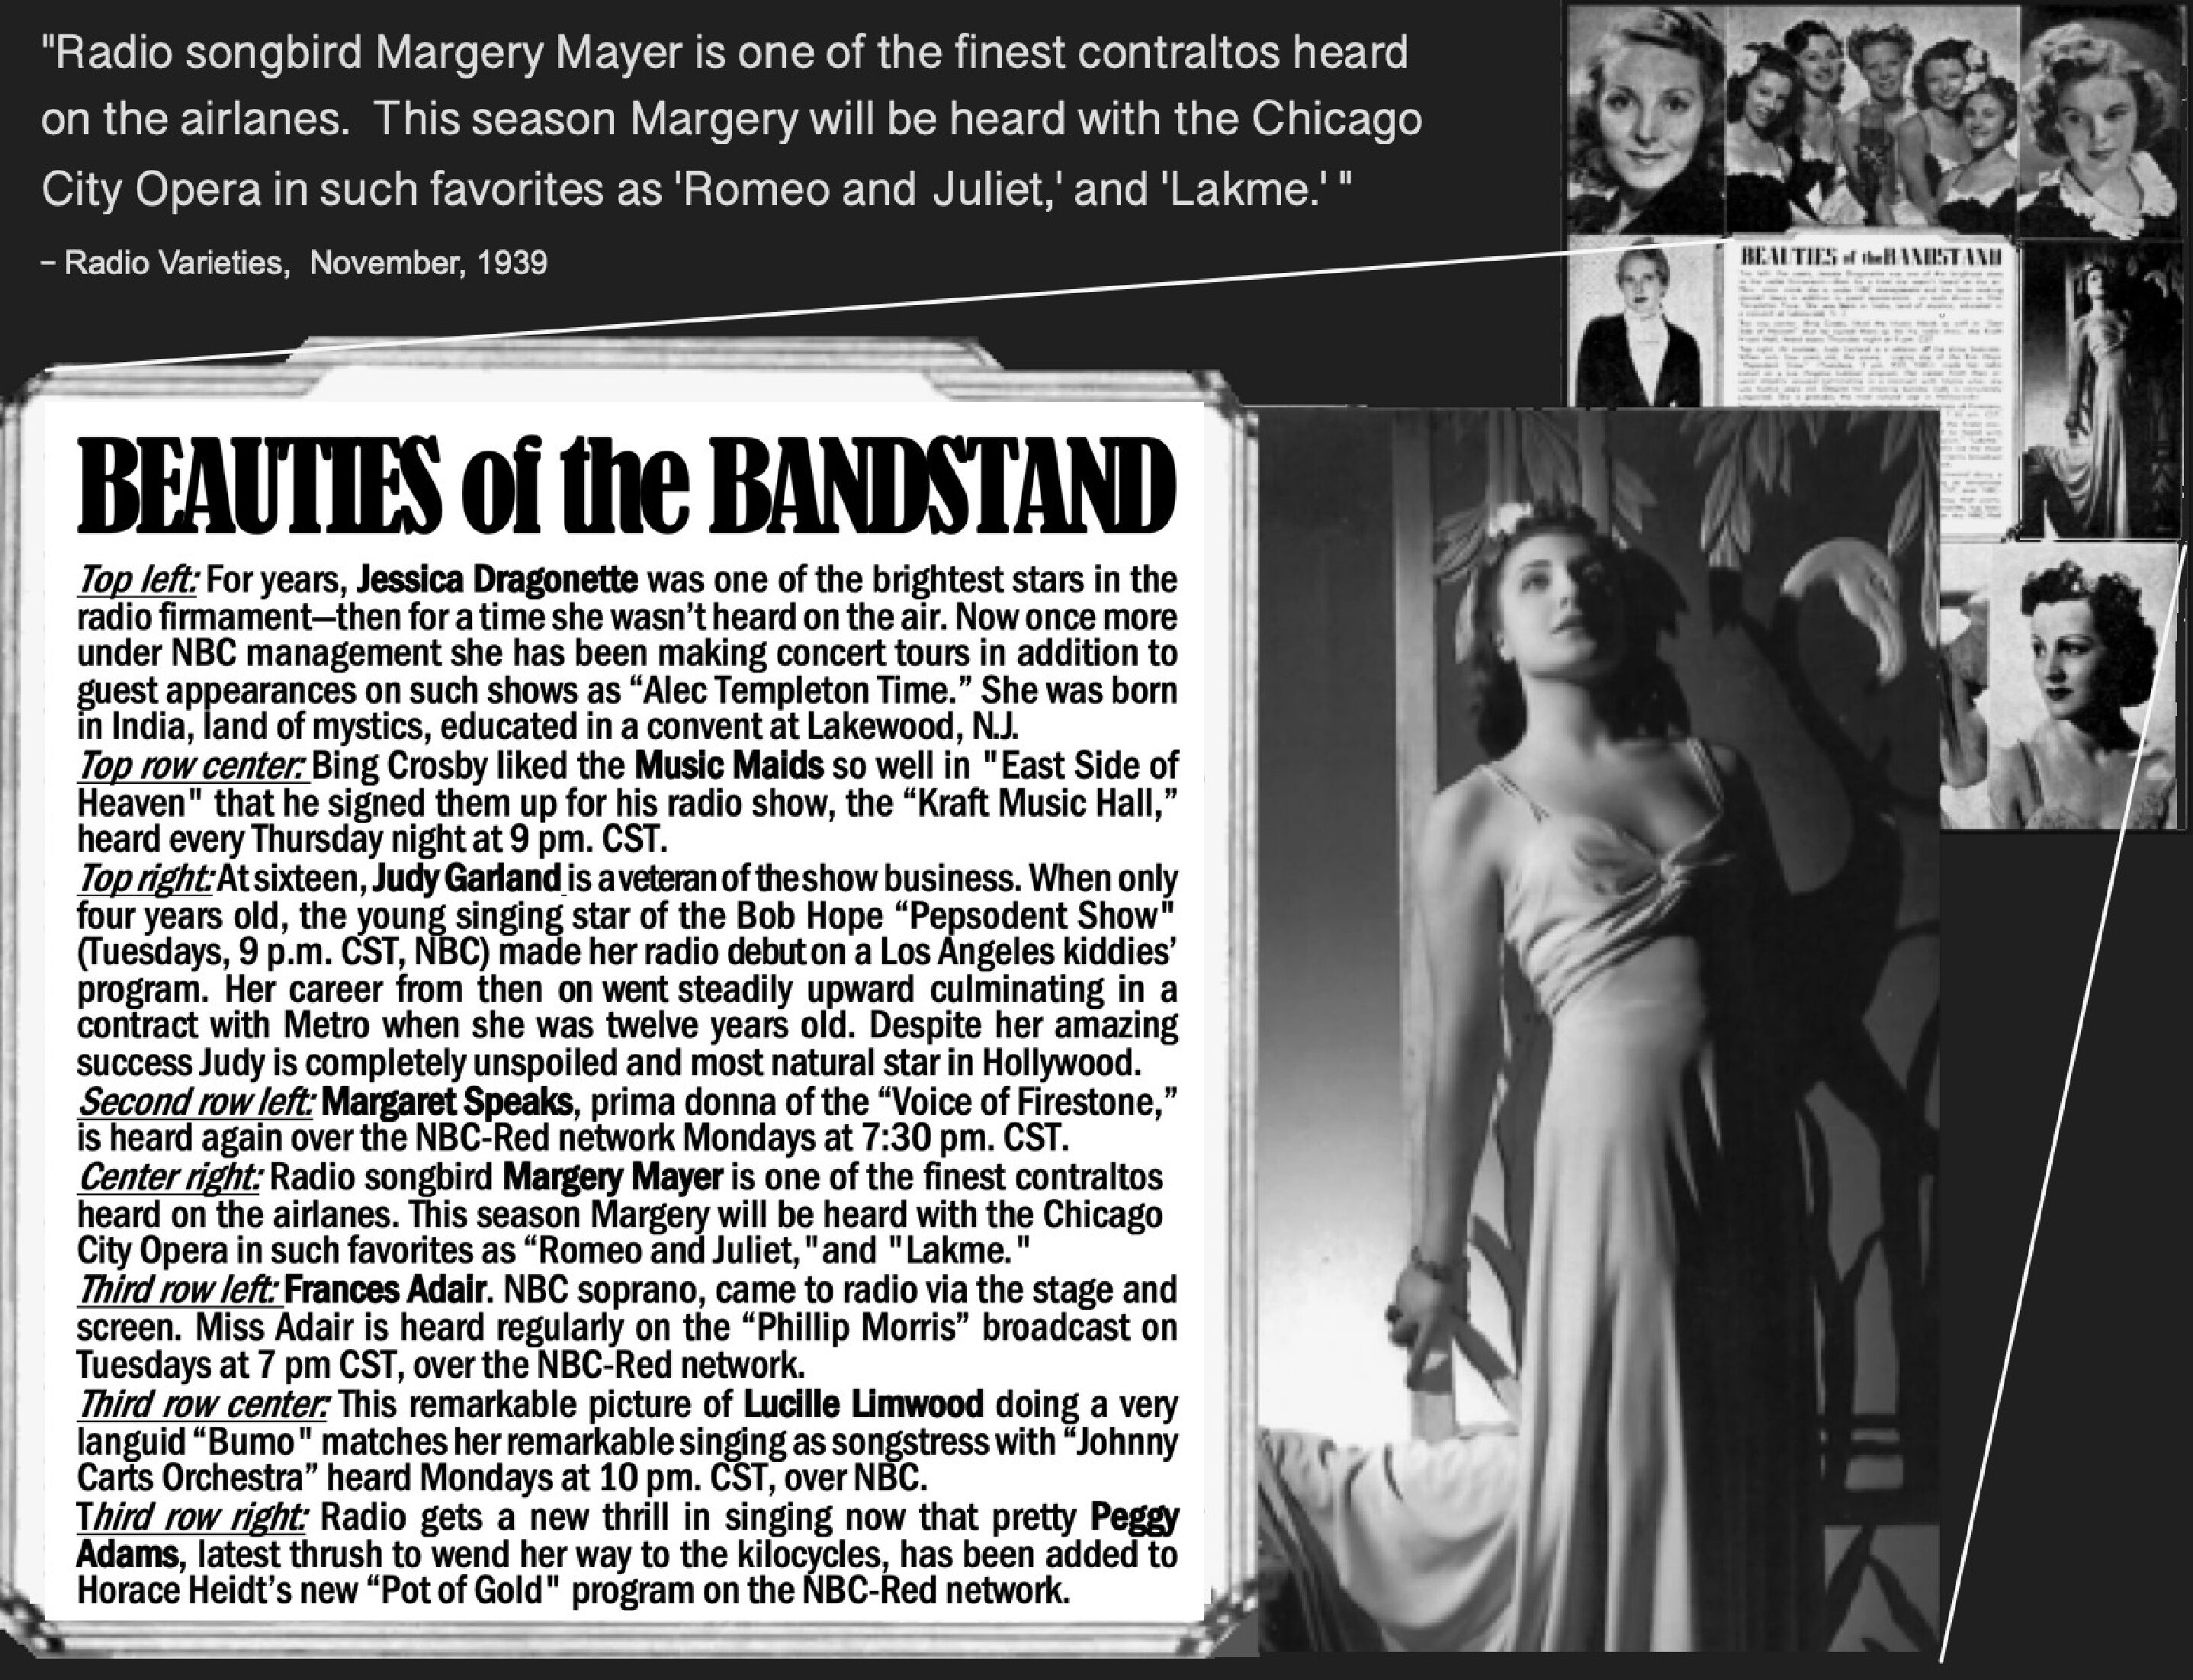 MM in Radio Varieties 11-1939 - Beauties of the Bandstand